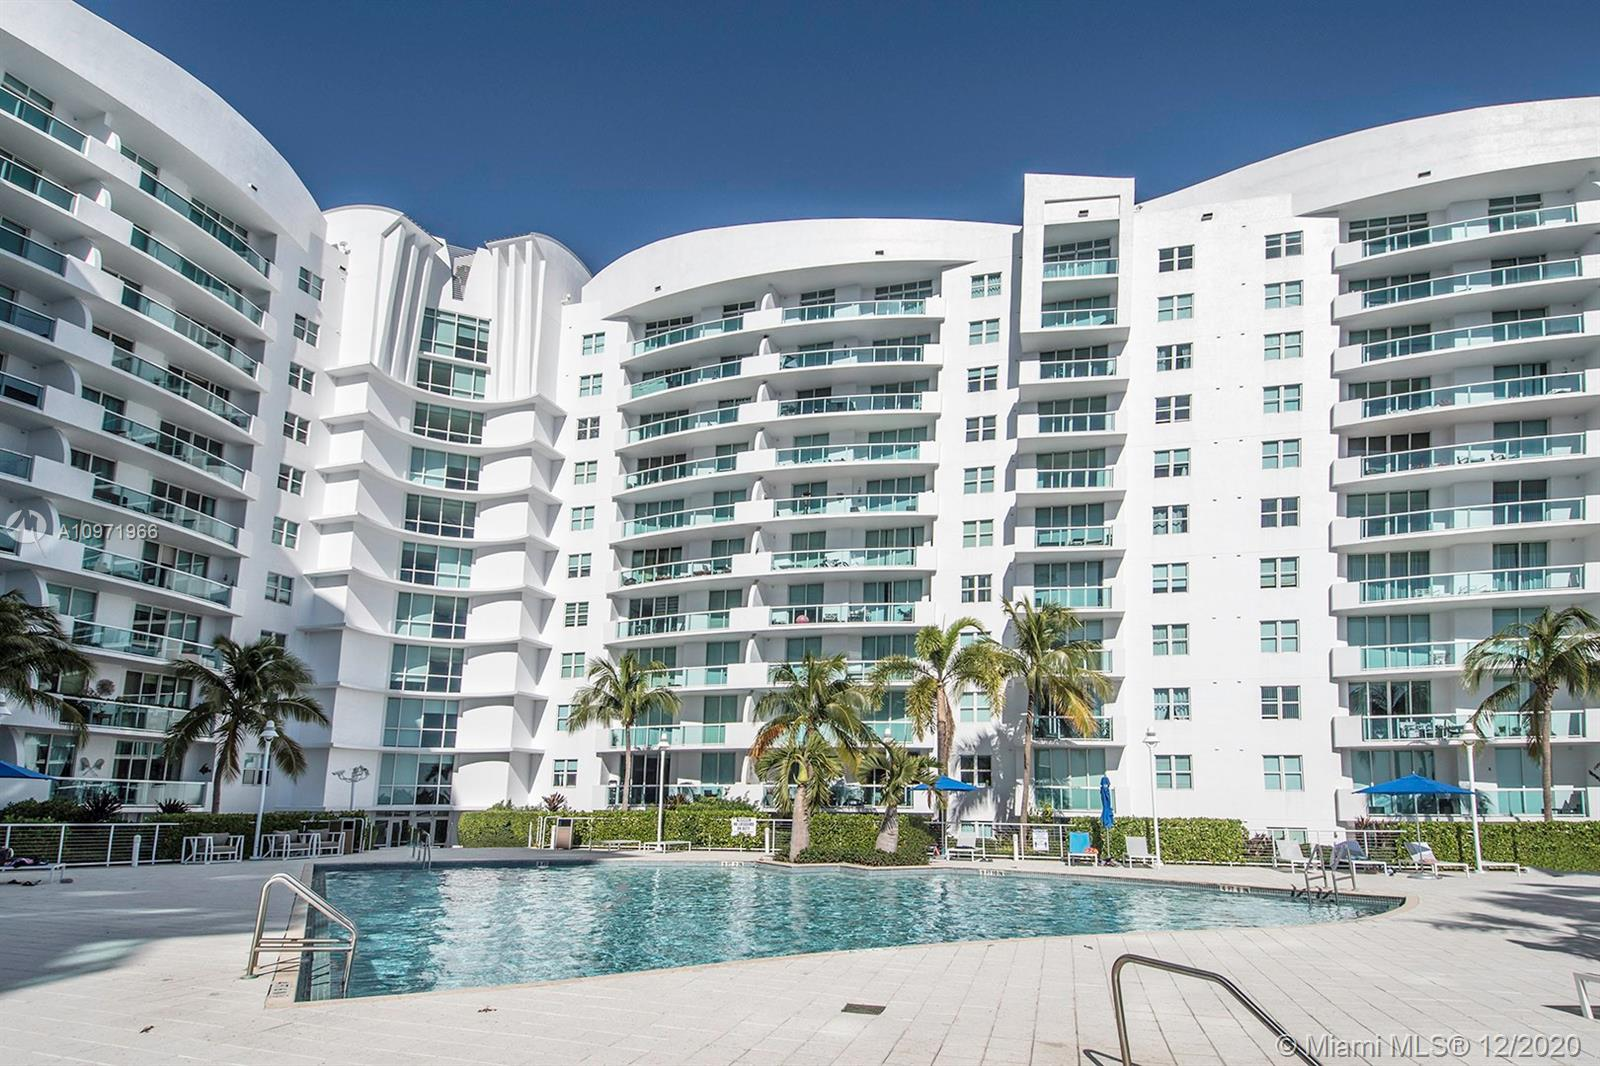 Motivated seller for this large and bright 1 bedroom condo with beautiful views of the bay from both rooms. Floor to ceiling windows, large balcony. Kitchen with GE Profile appliances and granite counter tops. Washer and Dryer in unit, Bathroom with whirlpool bath tub, separate shower and dual sinks. Pets are welcome up to 50lbs. The prestigious 360 community features many amenities, including free valet parking, fitness center, community & party room, heated pools (2), 24 hour security, business center, bike storage, marina and much more. Assigned parking space very conveniently located near the unit. Bonus: Internet and cable are included in the maintenance!